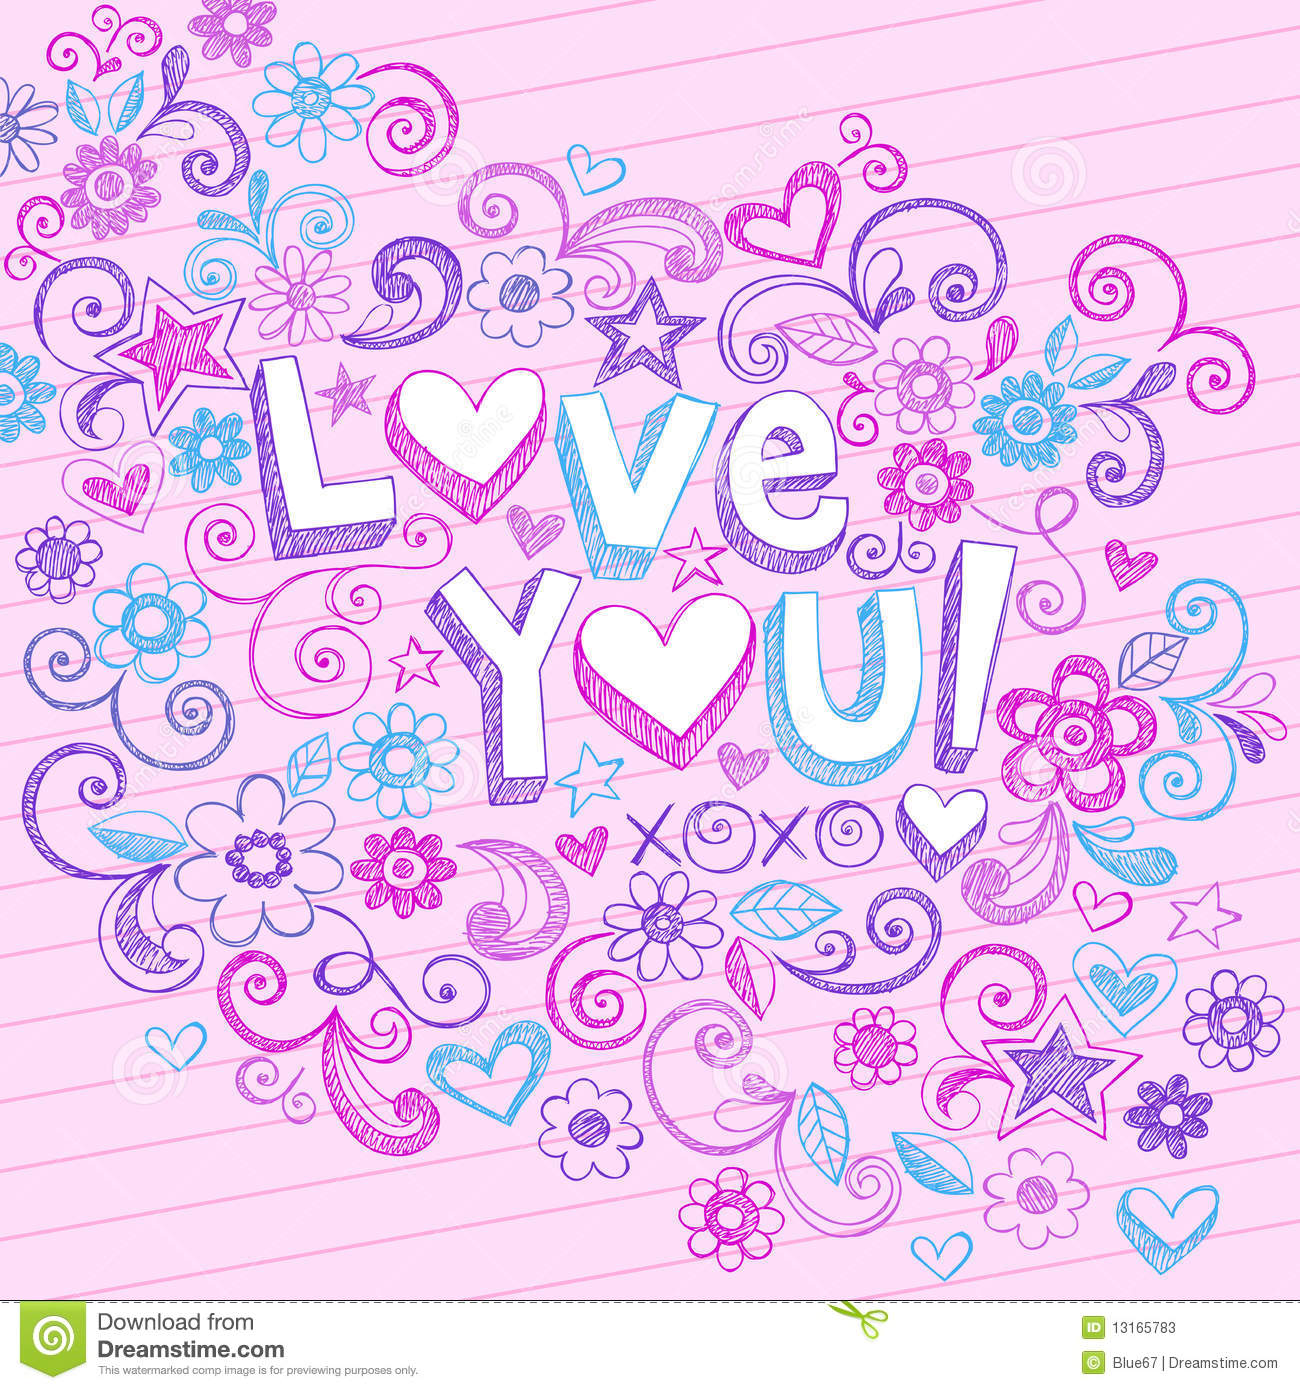 valentine's day hearts clip art